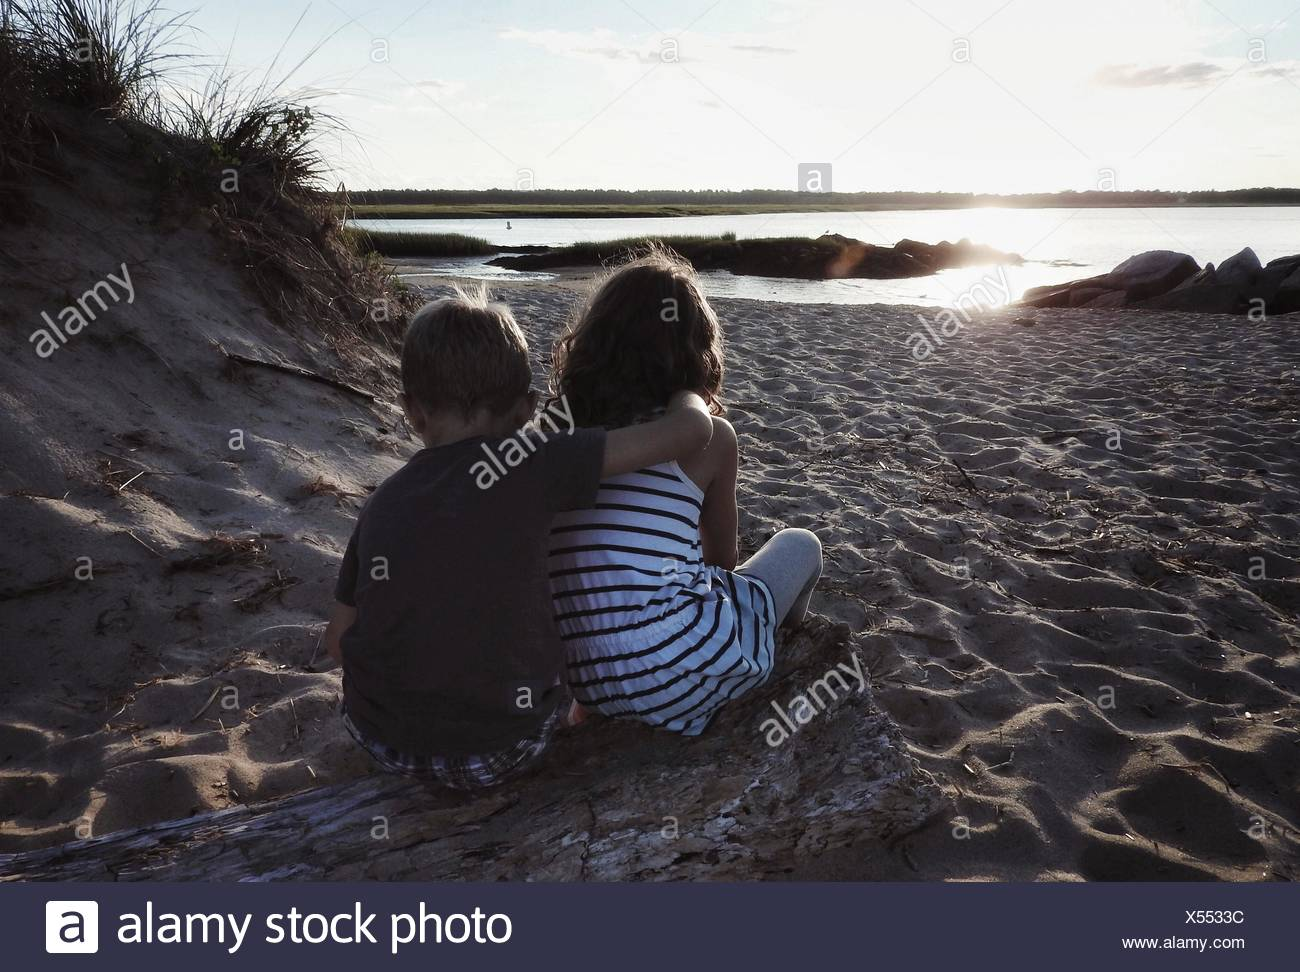 Rear View Of Brother With Arm Around Sister Relaxing On Sandy Beach - Stock Image